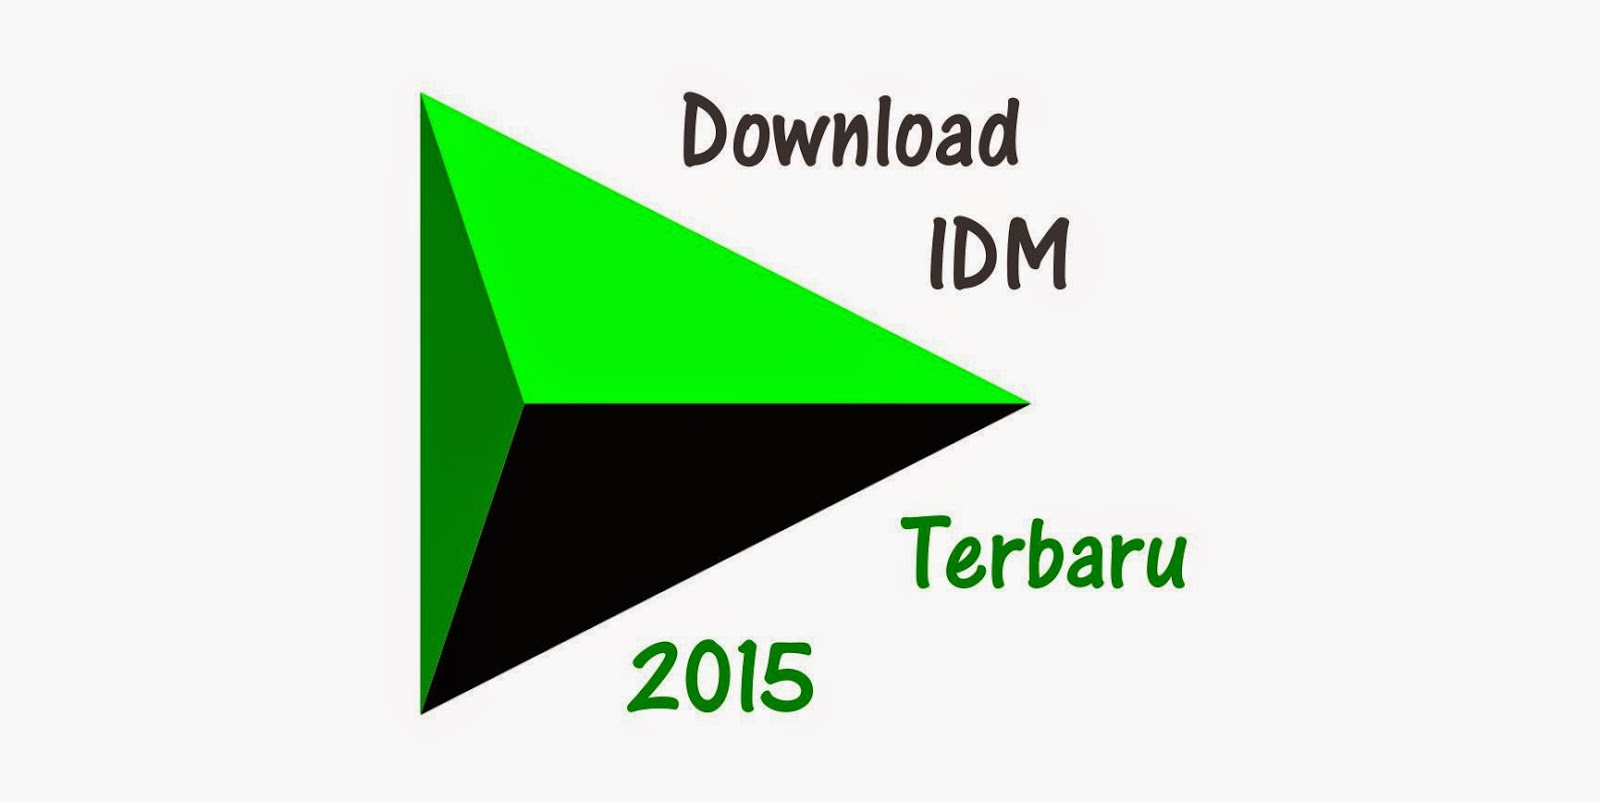 How to download from 1fichier with idm